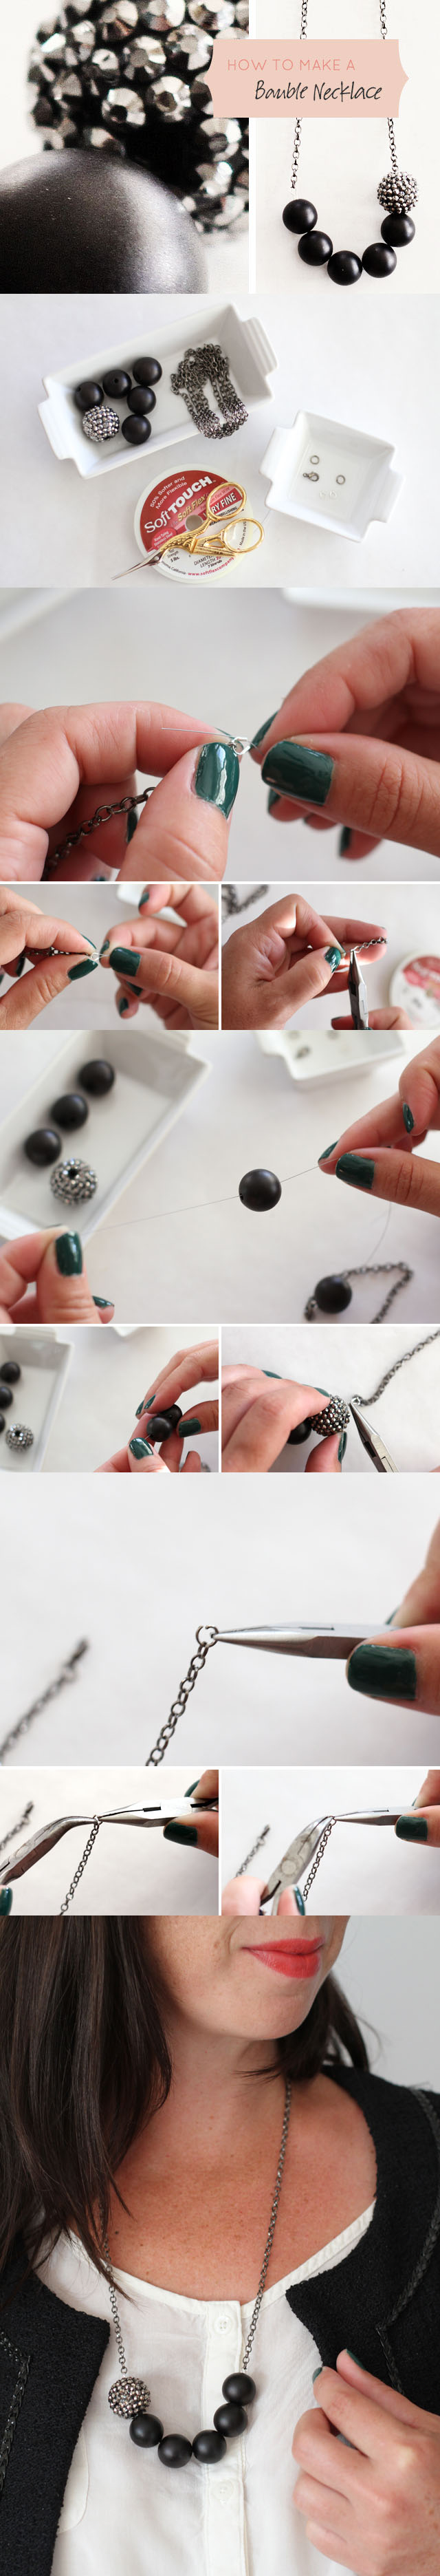 HOW-TO-MAKE-A-SIMPLE-BAUBLE-NECKLACE